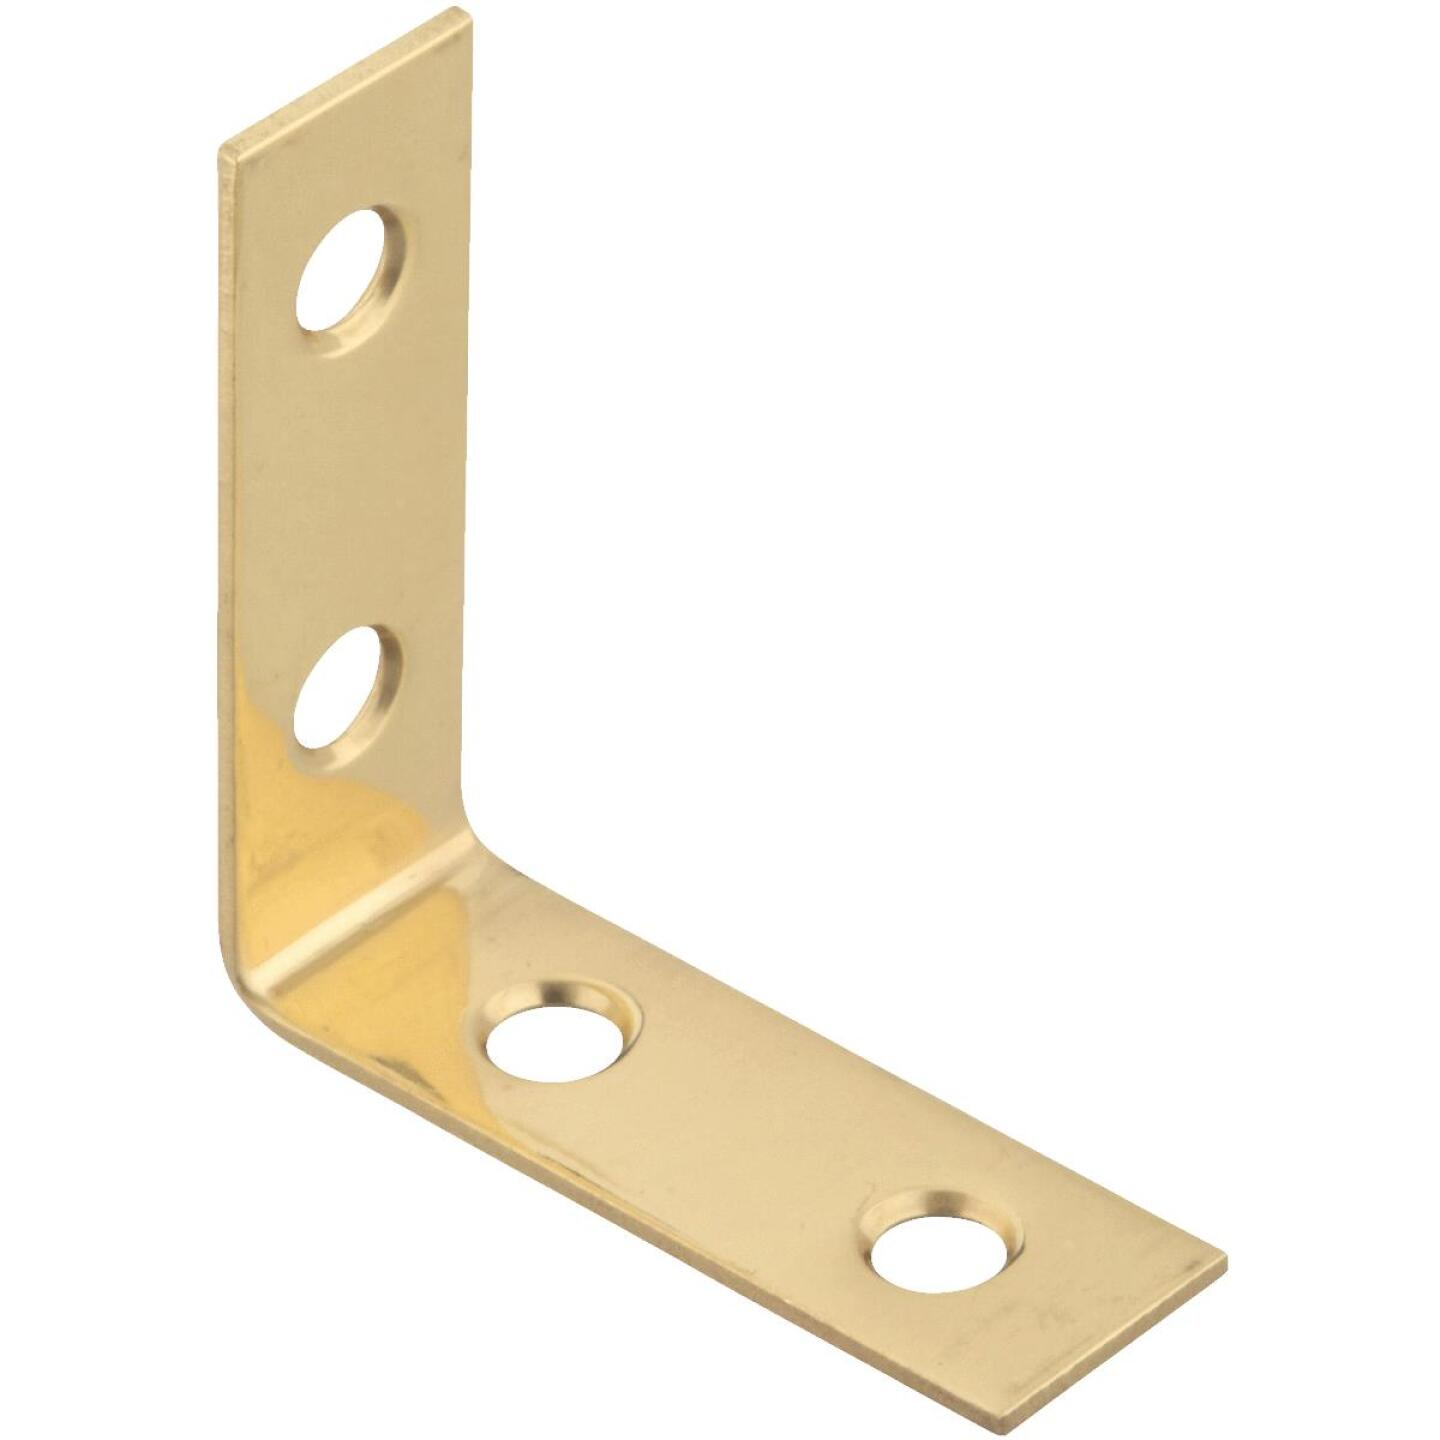 National Catalog V1875 1-1/2 In. x 5/8 In. Solid Brass Corner Brace Image 1